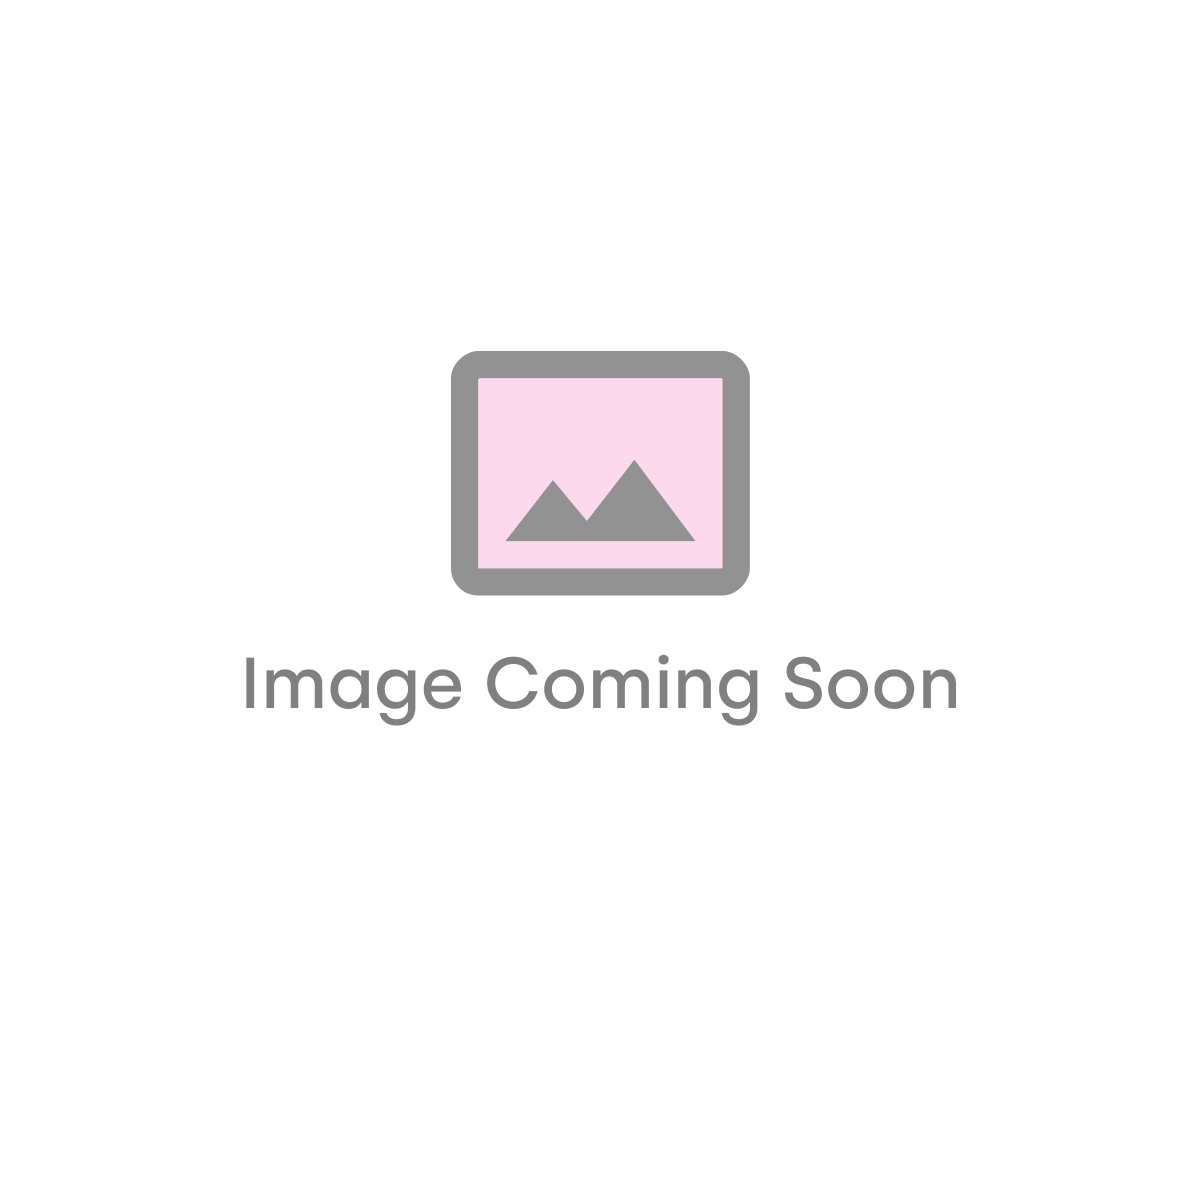 Forum Inlight INL-27988-PEW Cable Suspension Light - Pewter - 18473 - 18473